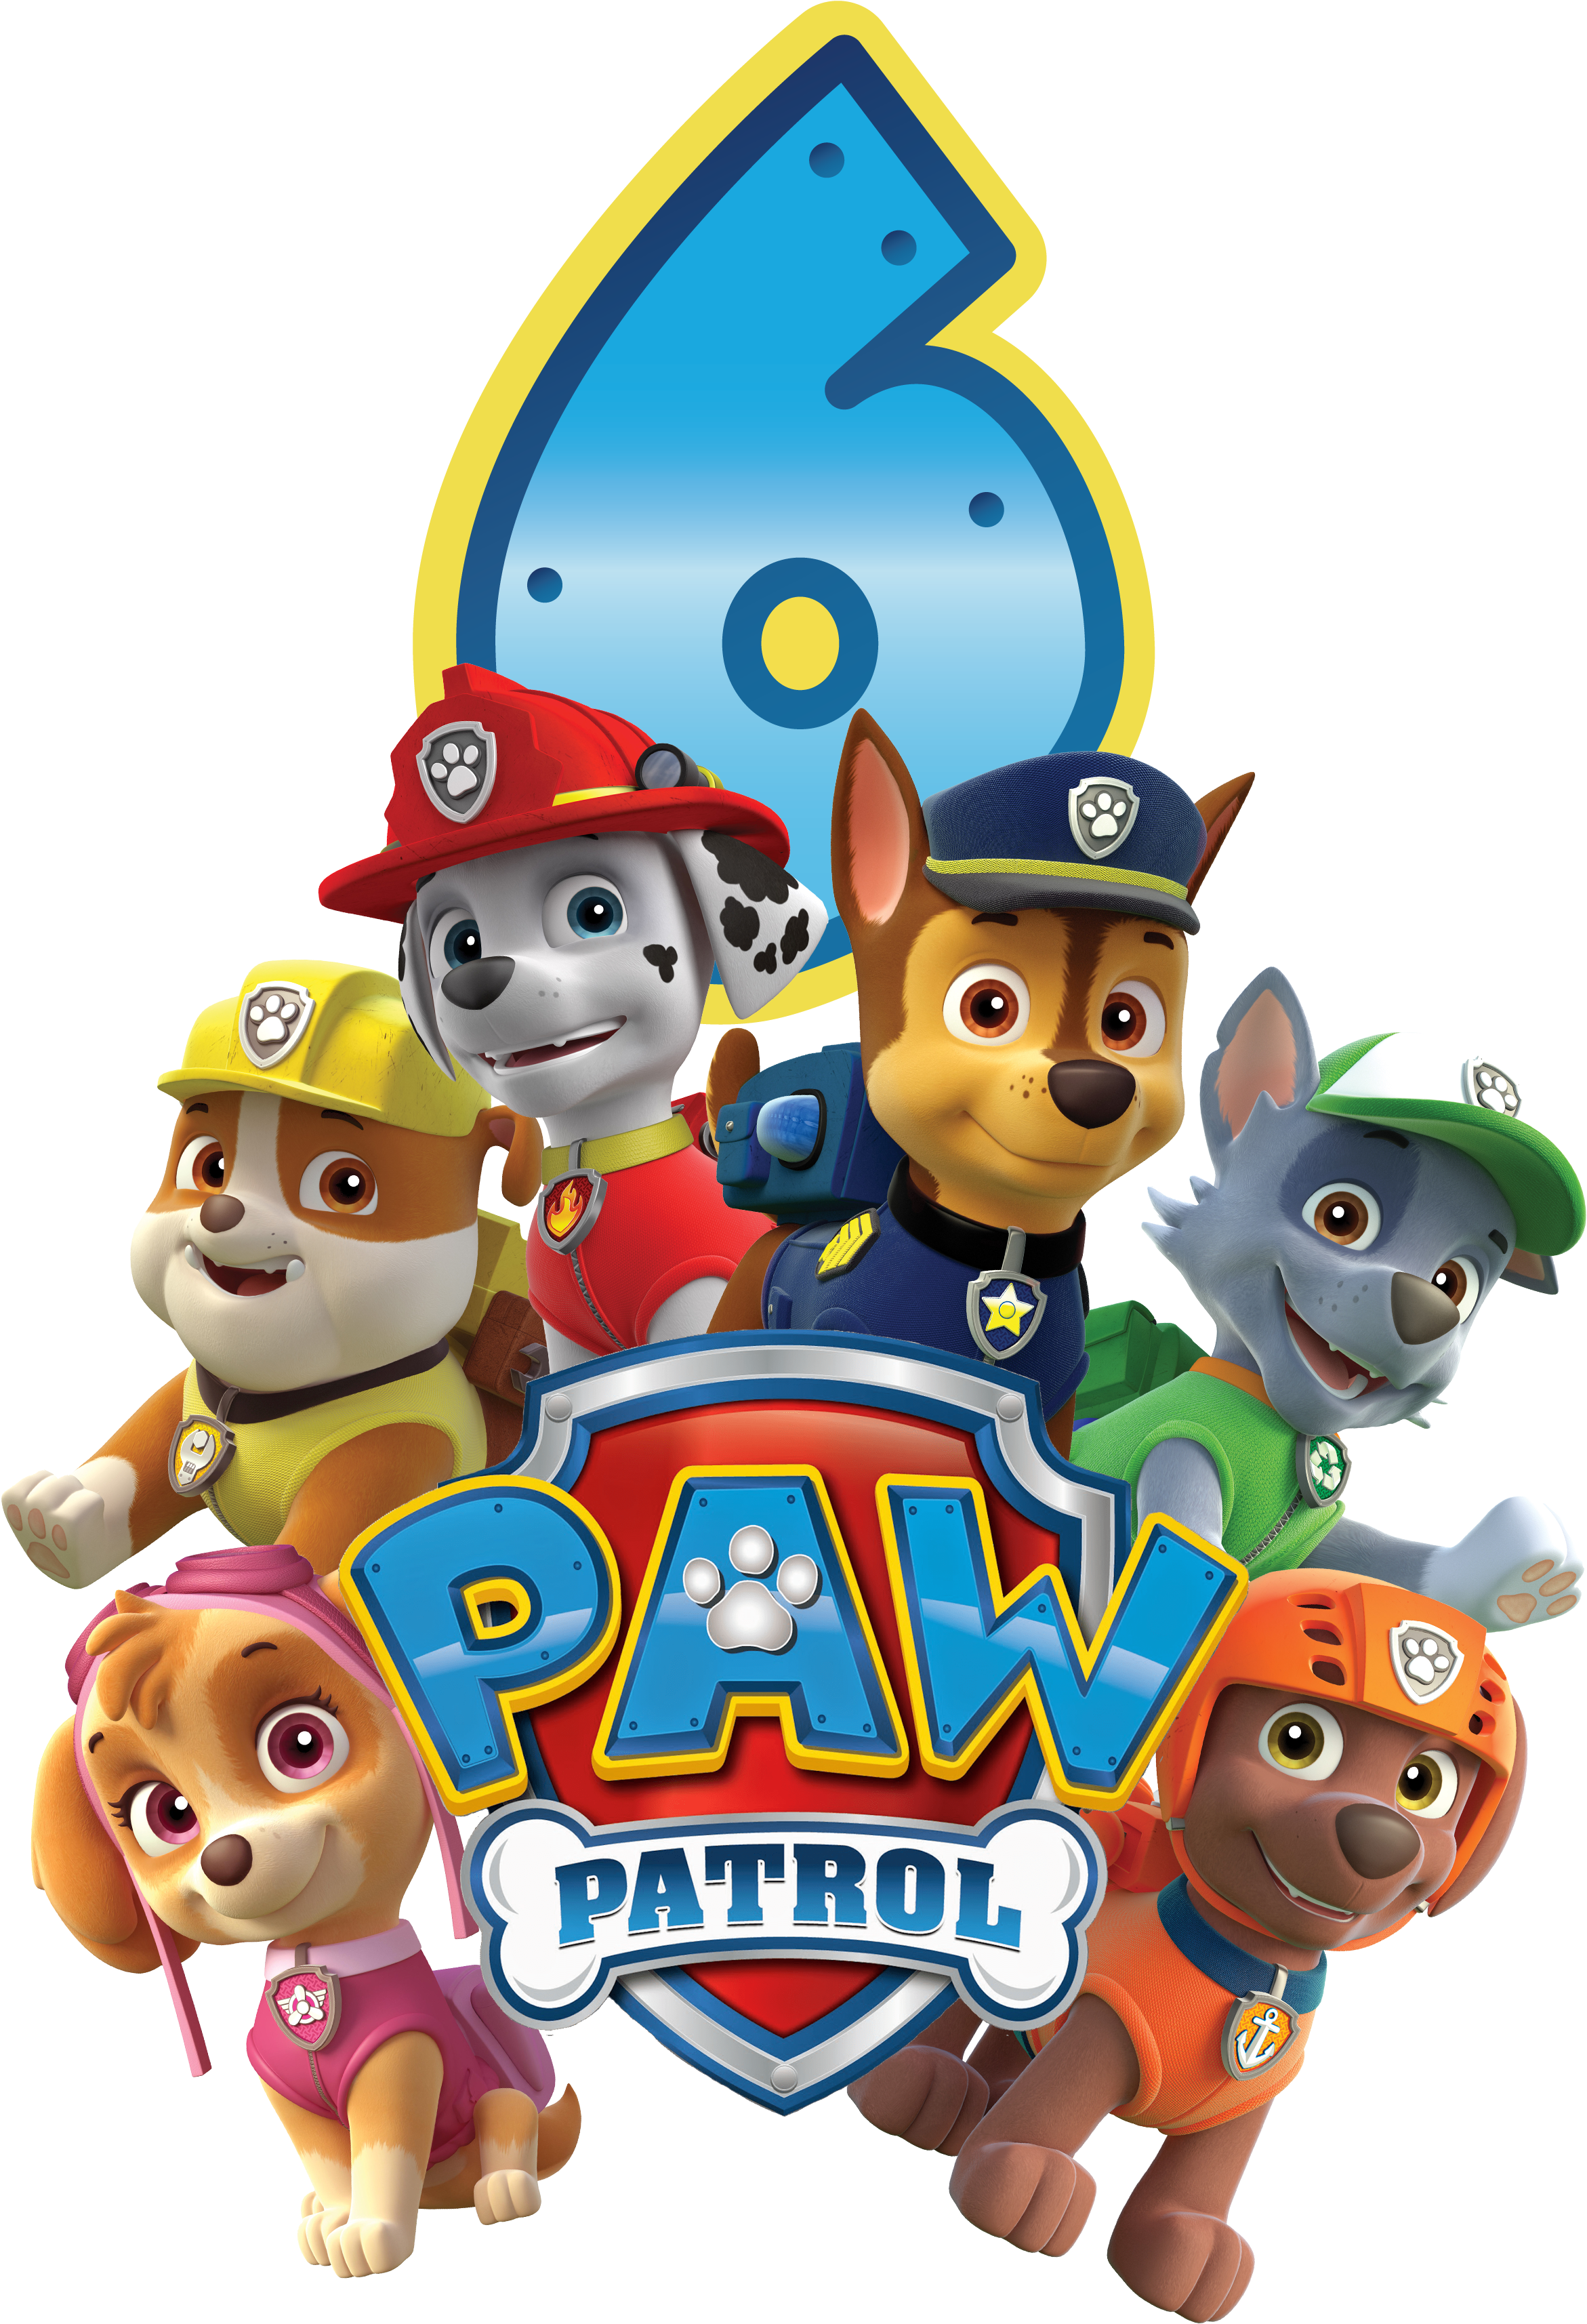 Paw patrol imagenes clipart clip art royalty free stock HD Paw Patrol Happy Birthday 2 Transparent PNG Image ... clip art royalty free stock